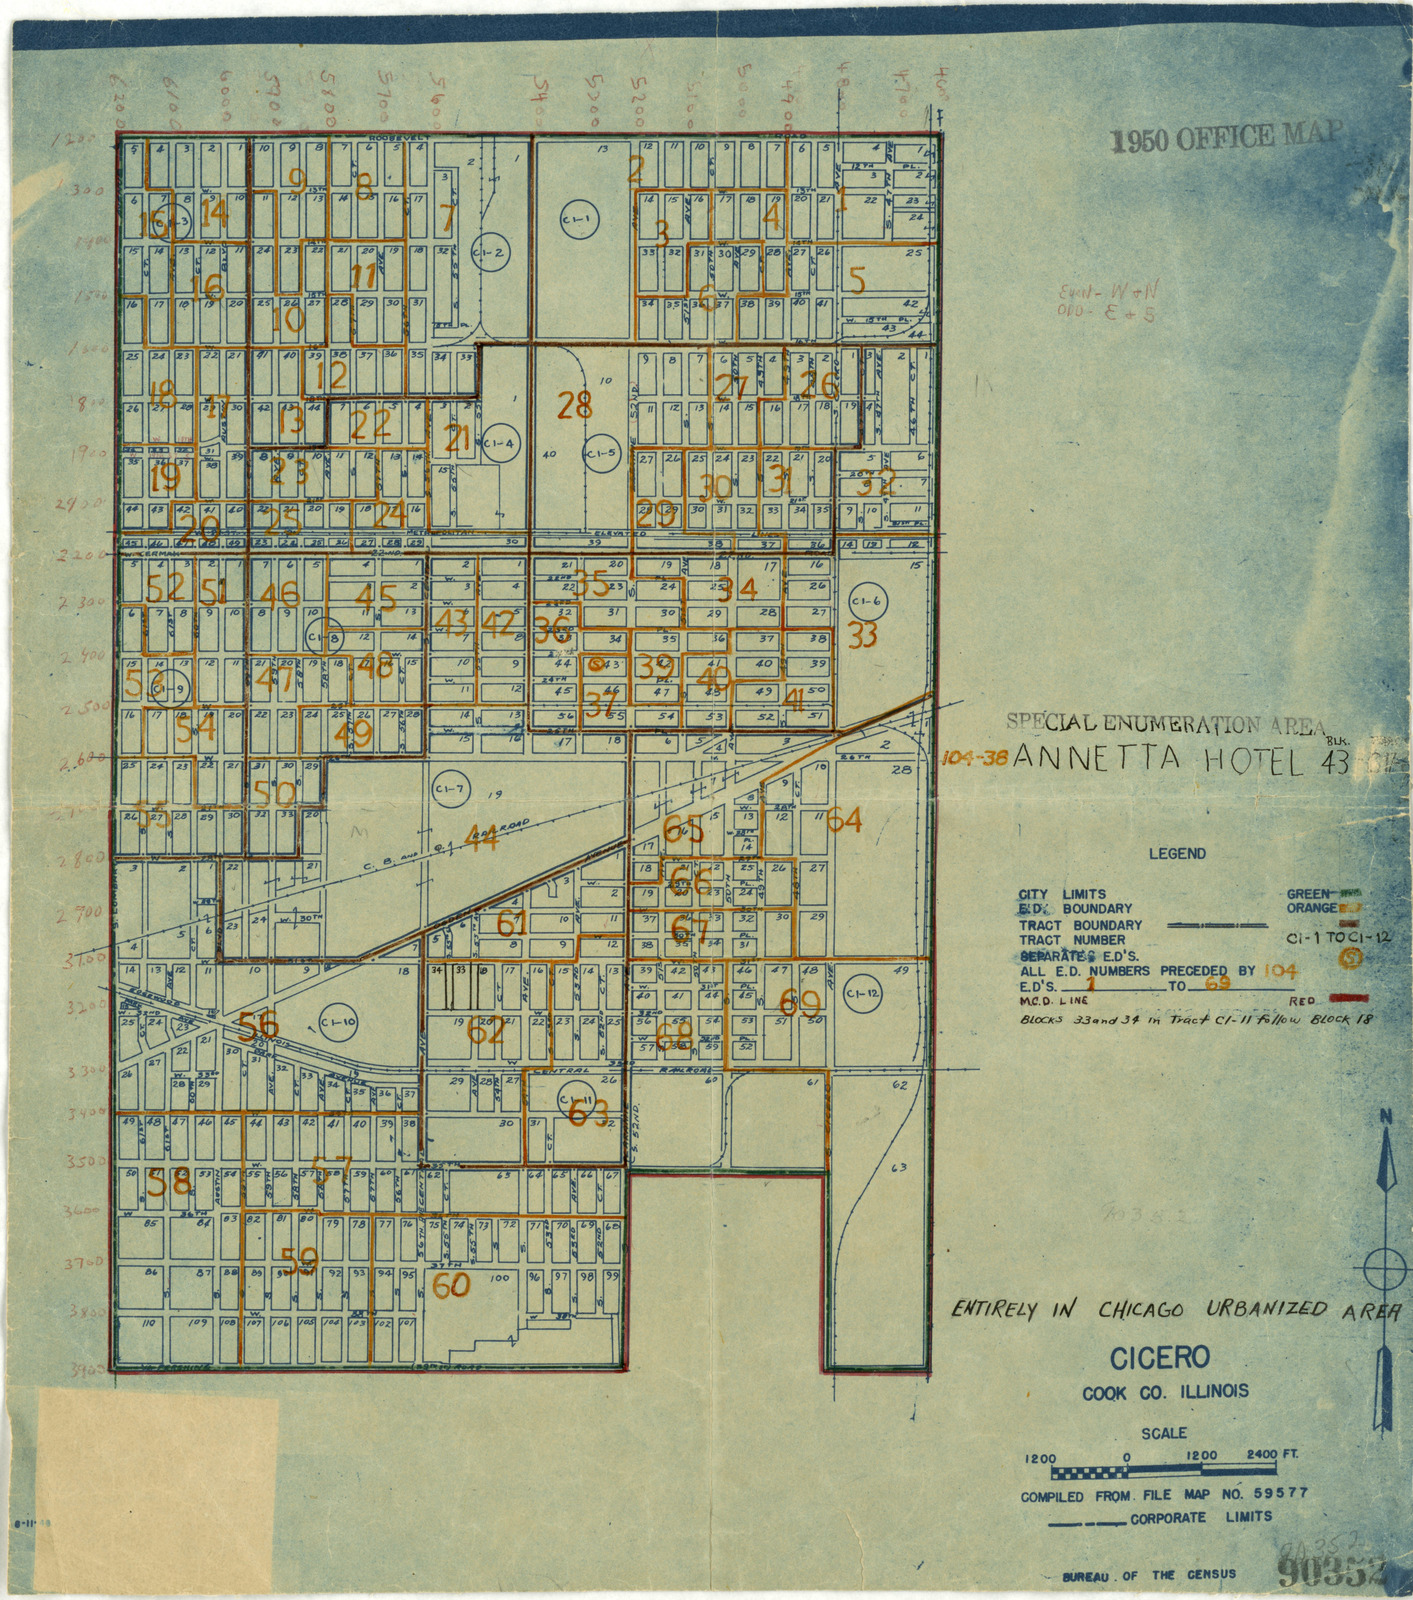 1950 Census Enumeration District Maps - Illinois (IL) - Cook County - Cicero - ED 104-1 to 69